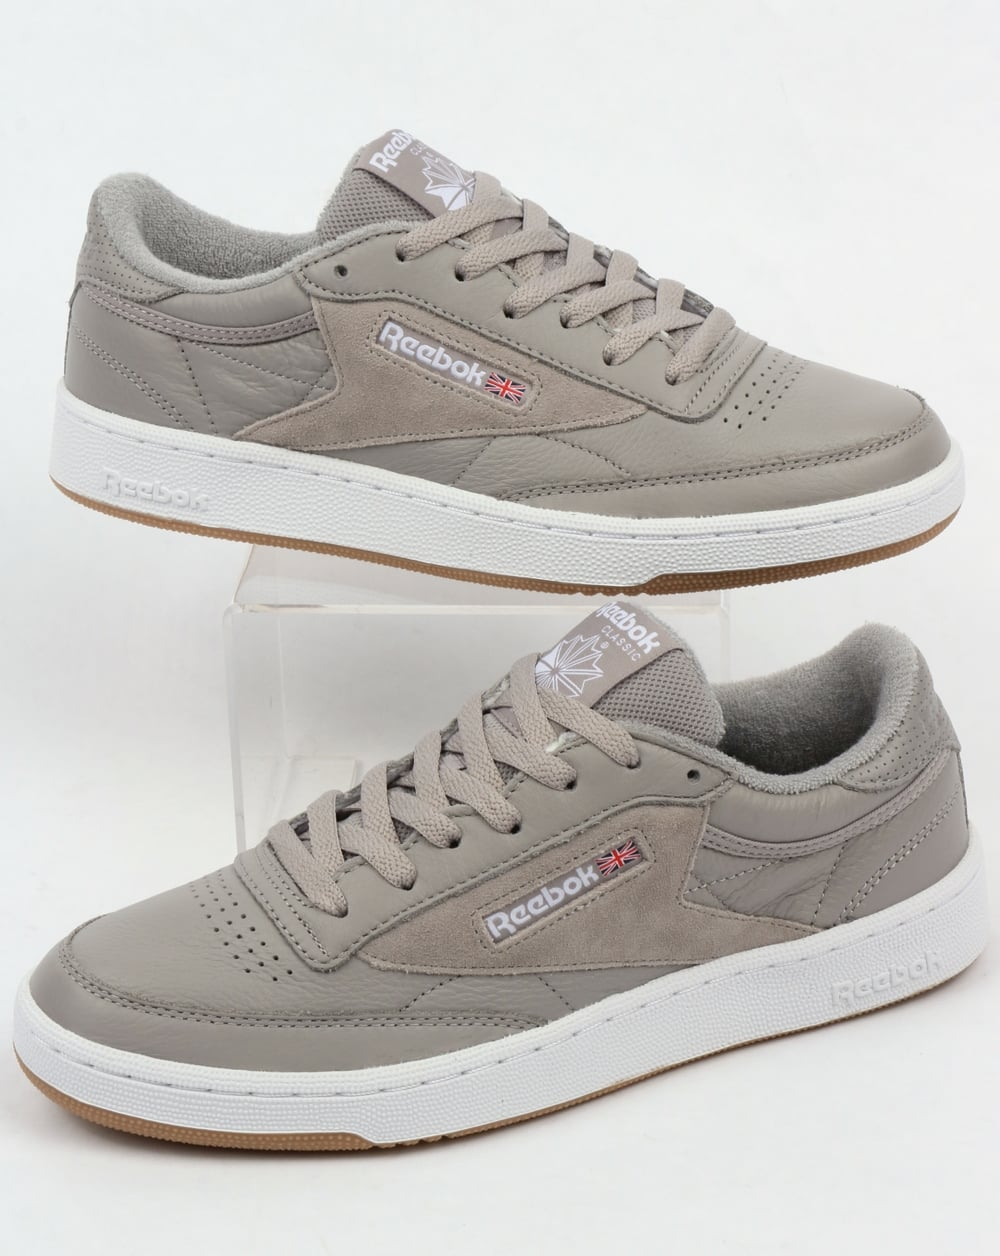 f7f716bfadf Reebok Club C 85 ESTL Trainers Powder Grey,shoes,leather,suede,mens